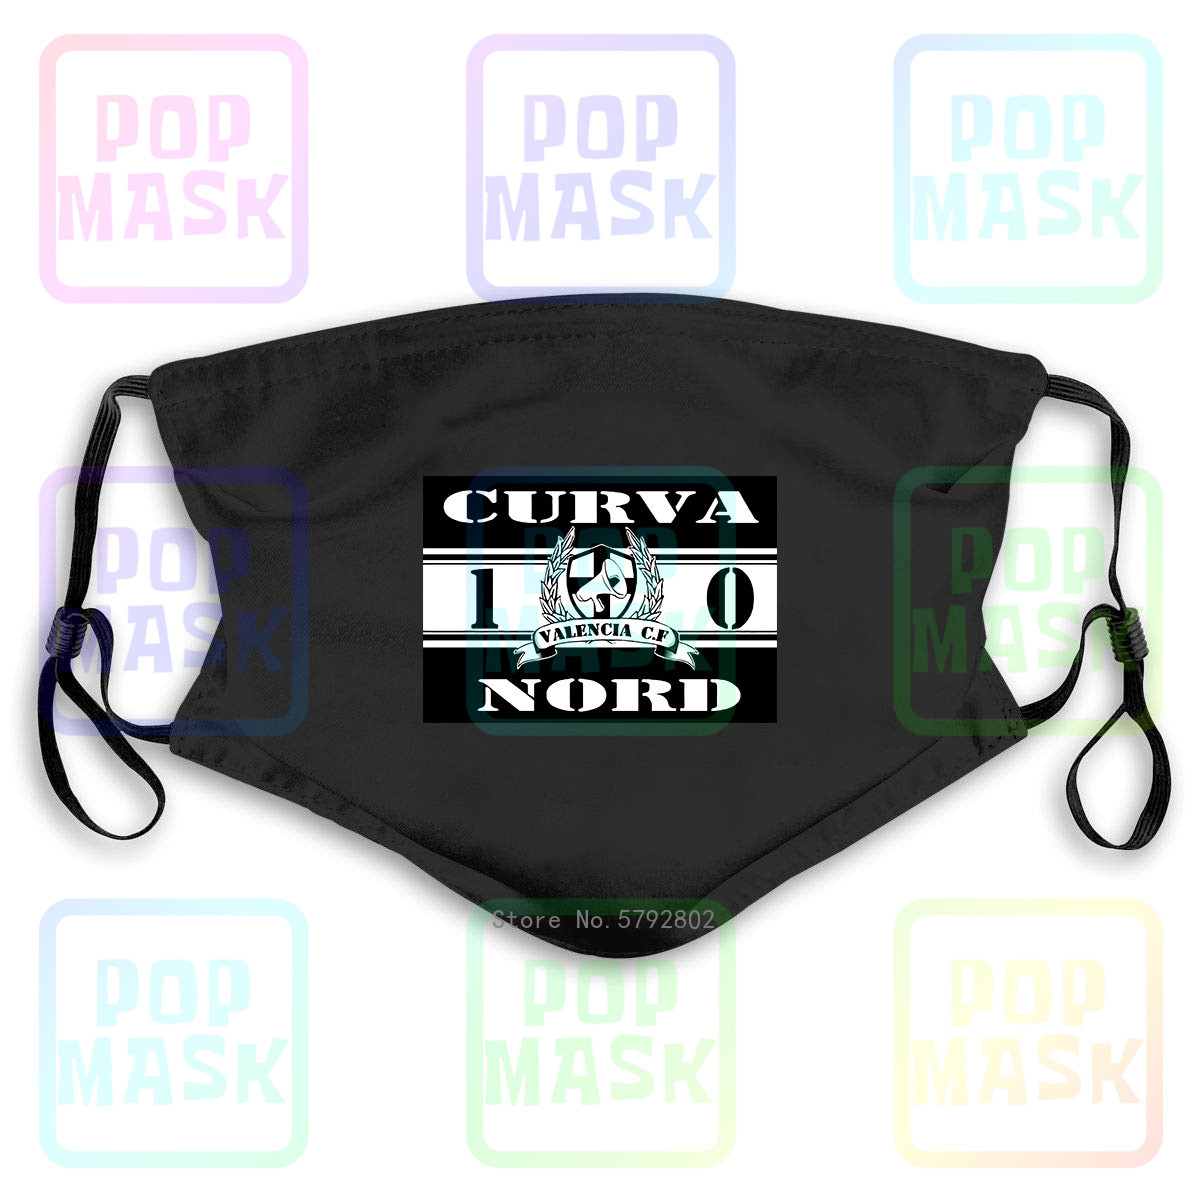 Dust Mask With Filter Ultras Valencia Spagna Curva Nord 1 Washable Reusable Mask